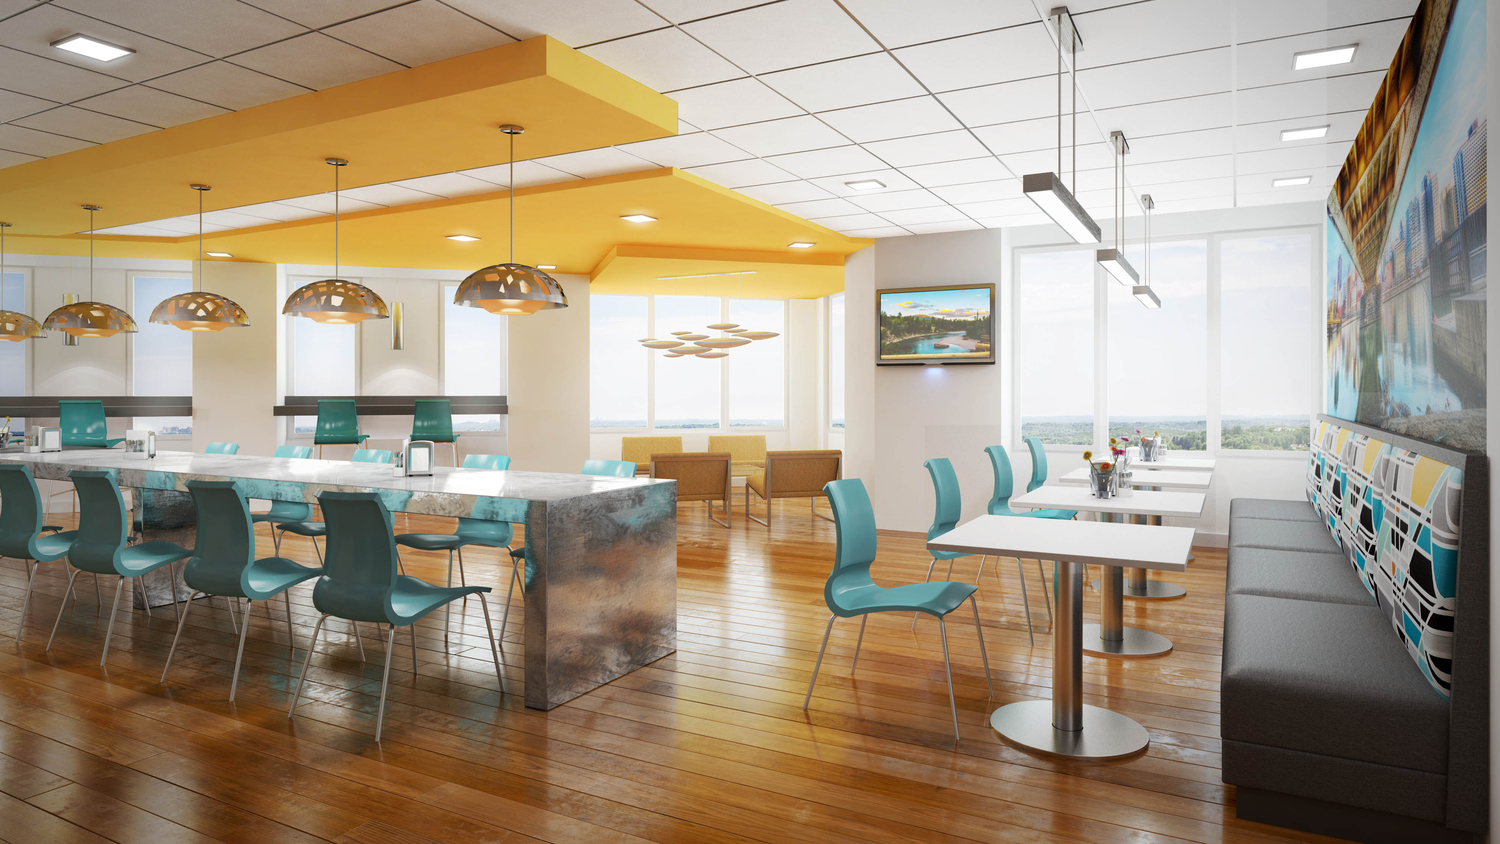 02 KPMG Pittsburgh Cafe Rendering